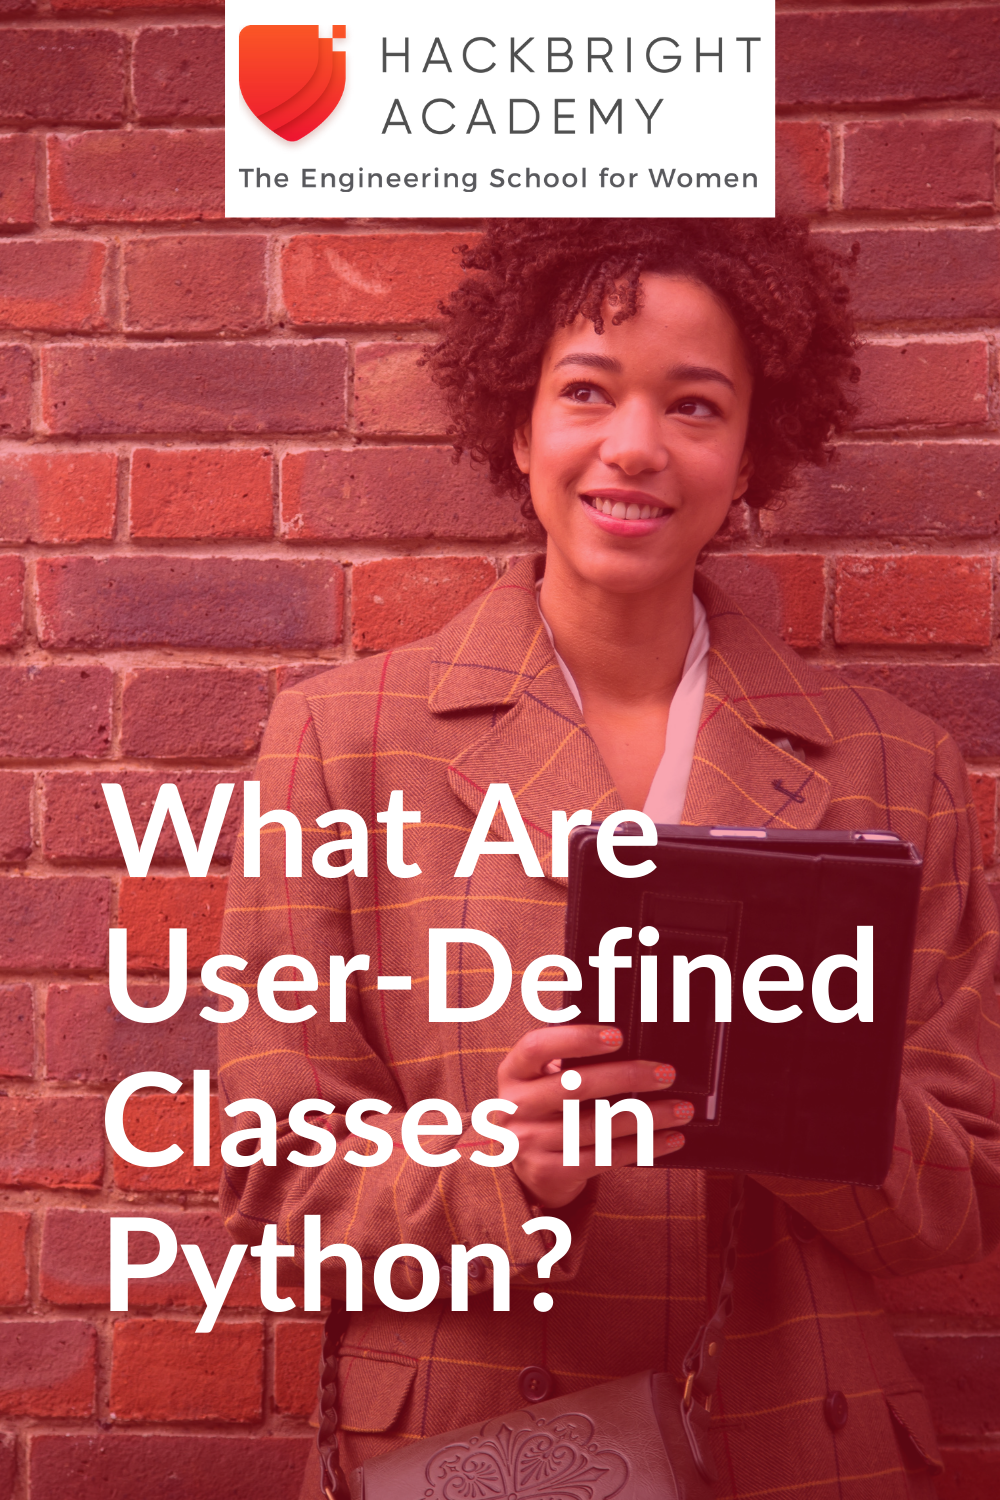 What Are User-Defined Classes in Python?